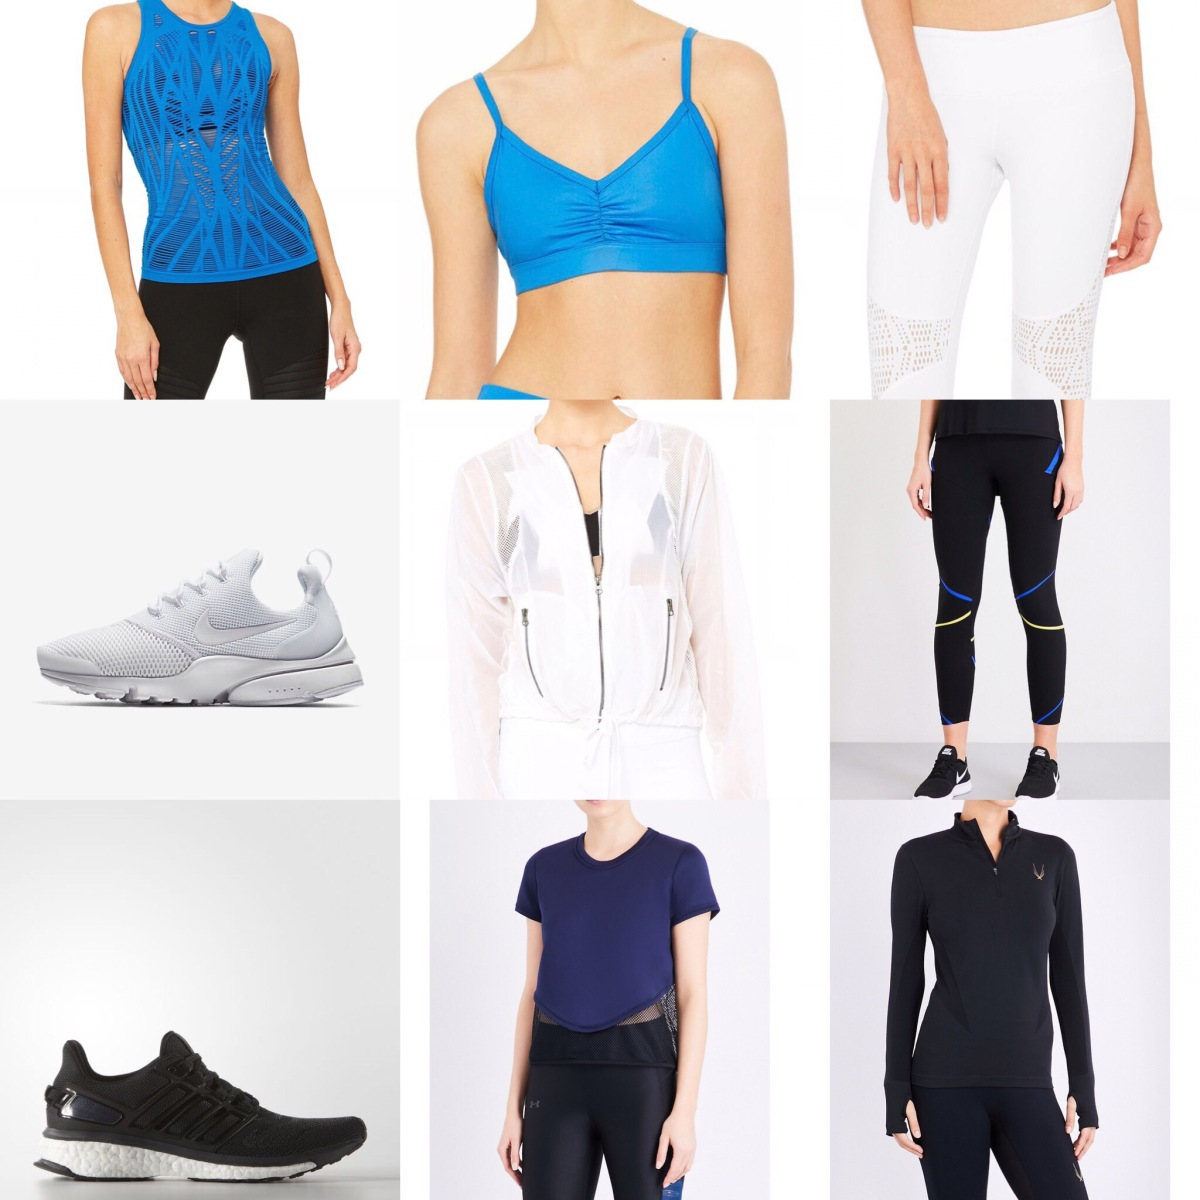 My Top Three Workout Outfits